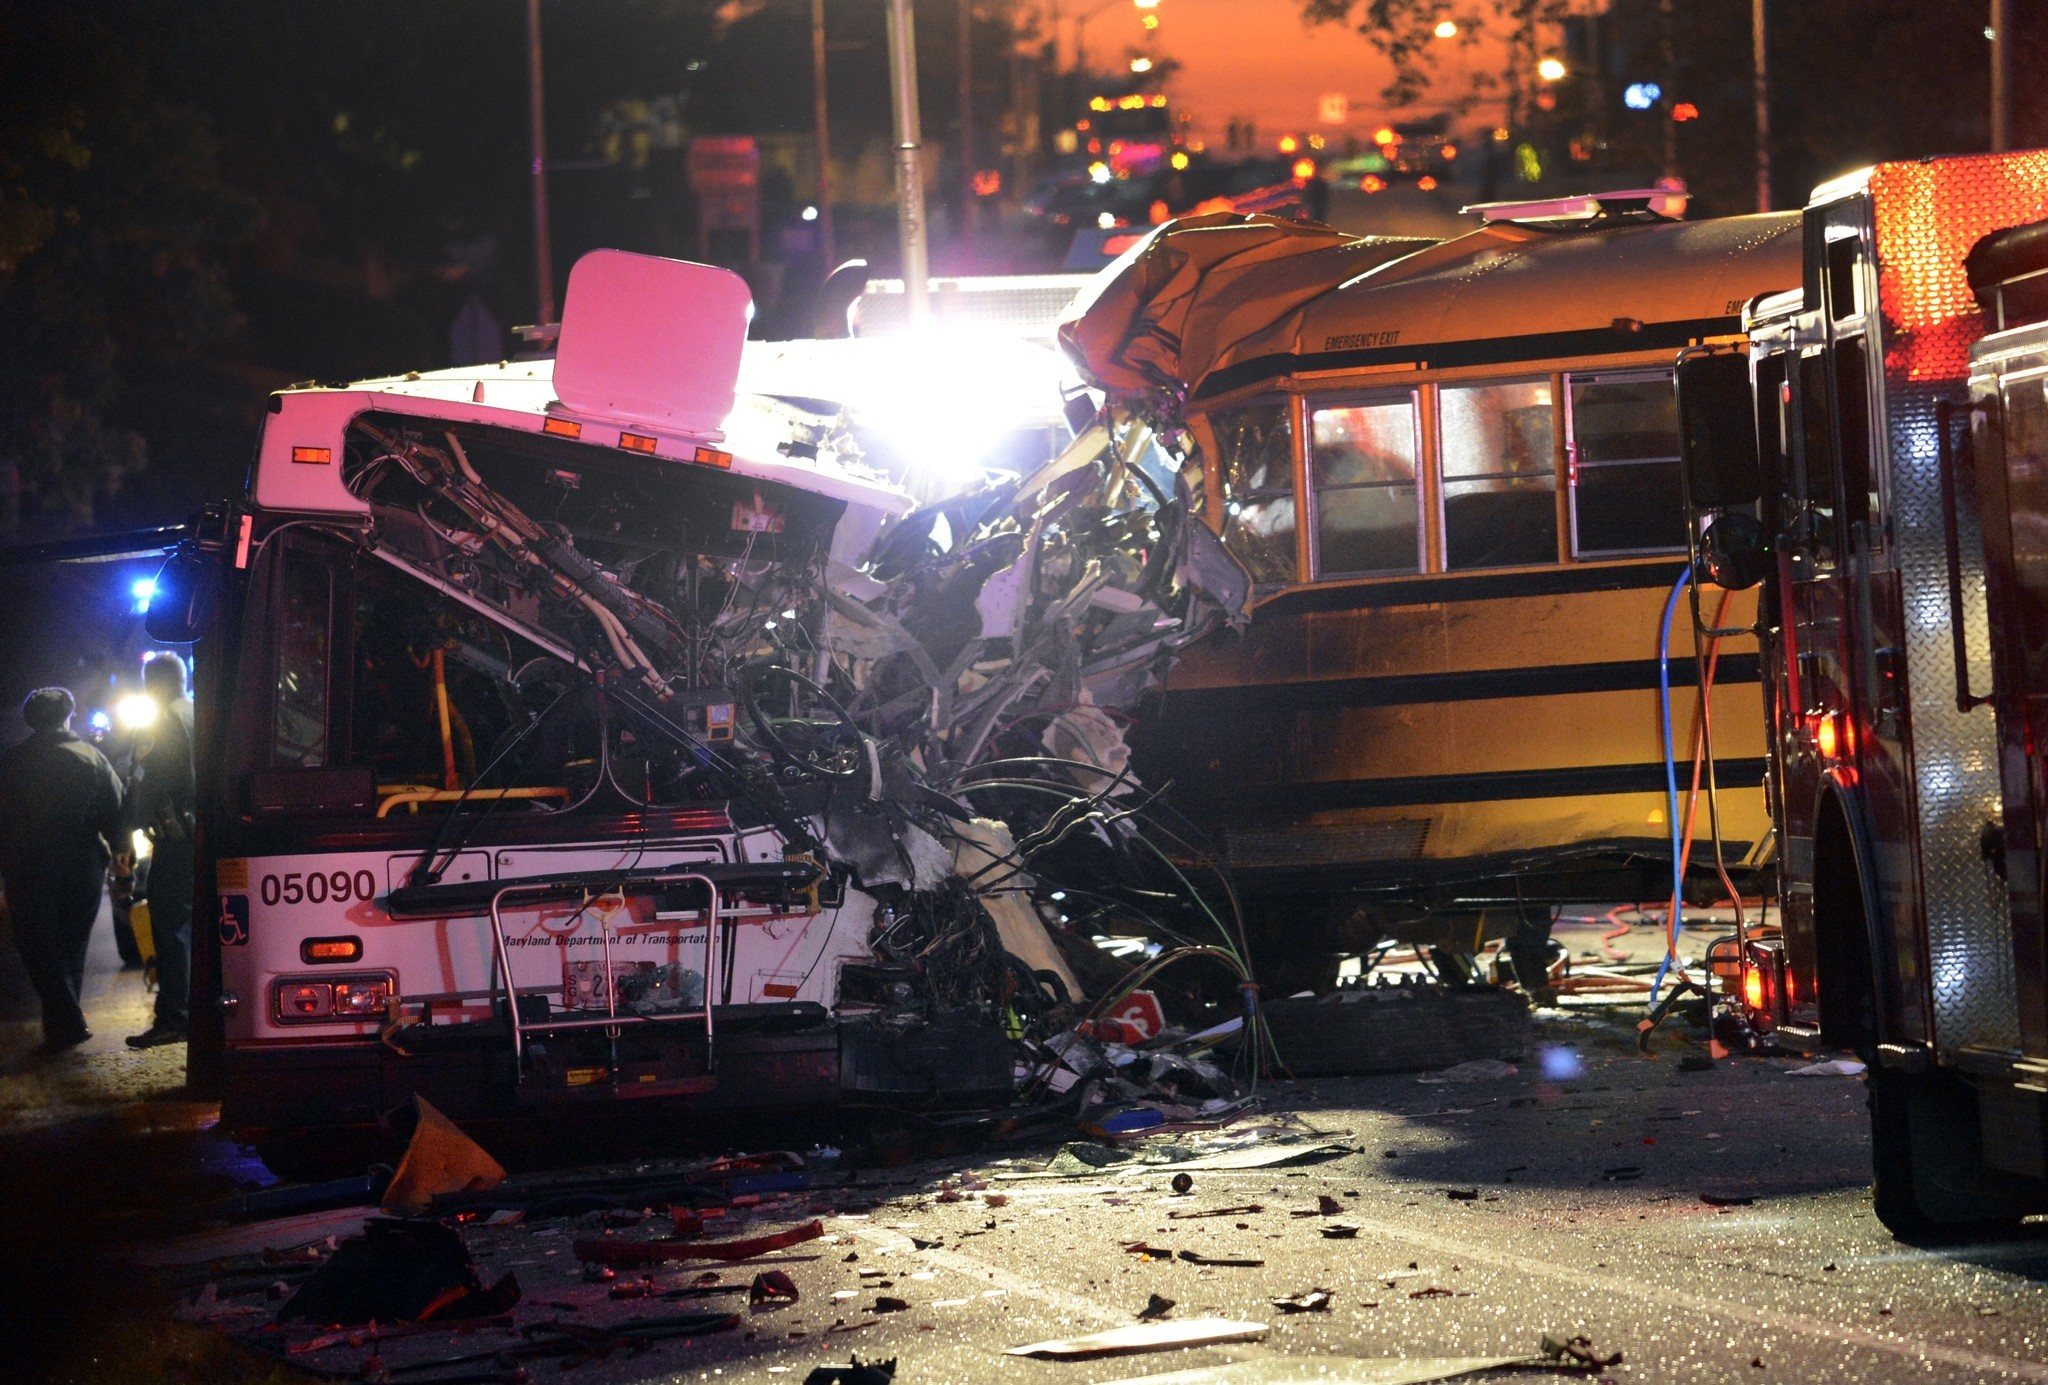 Both bus drivers among 6 killed in 2-bus Baltimore crash - The